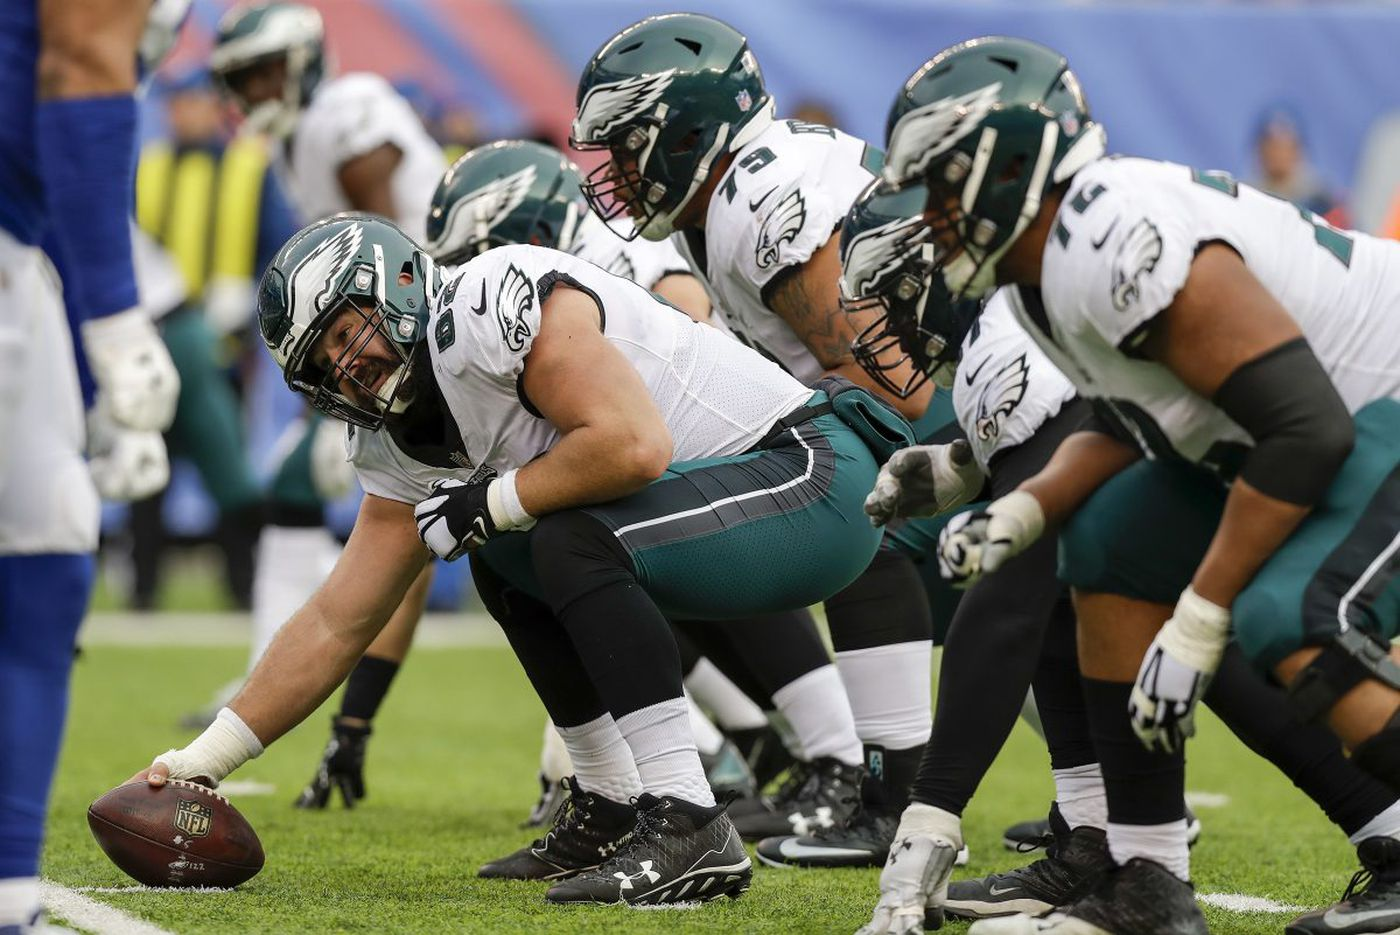 Eagles-Raiders scouting report